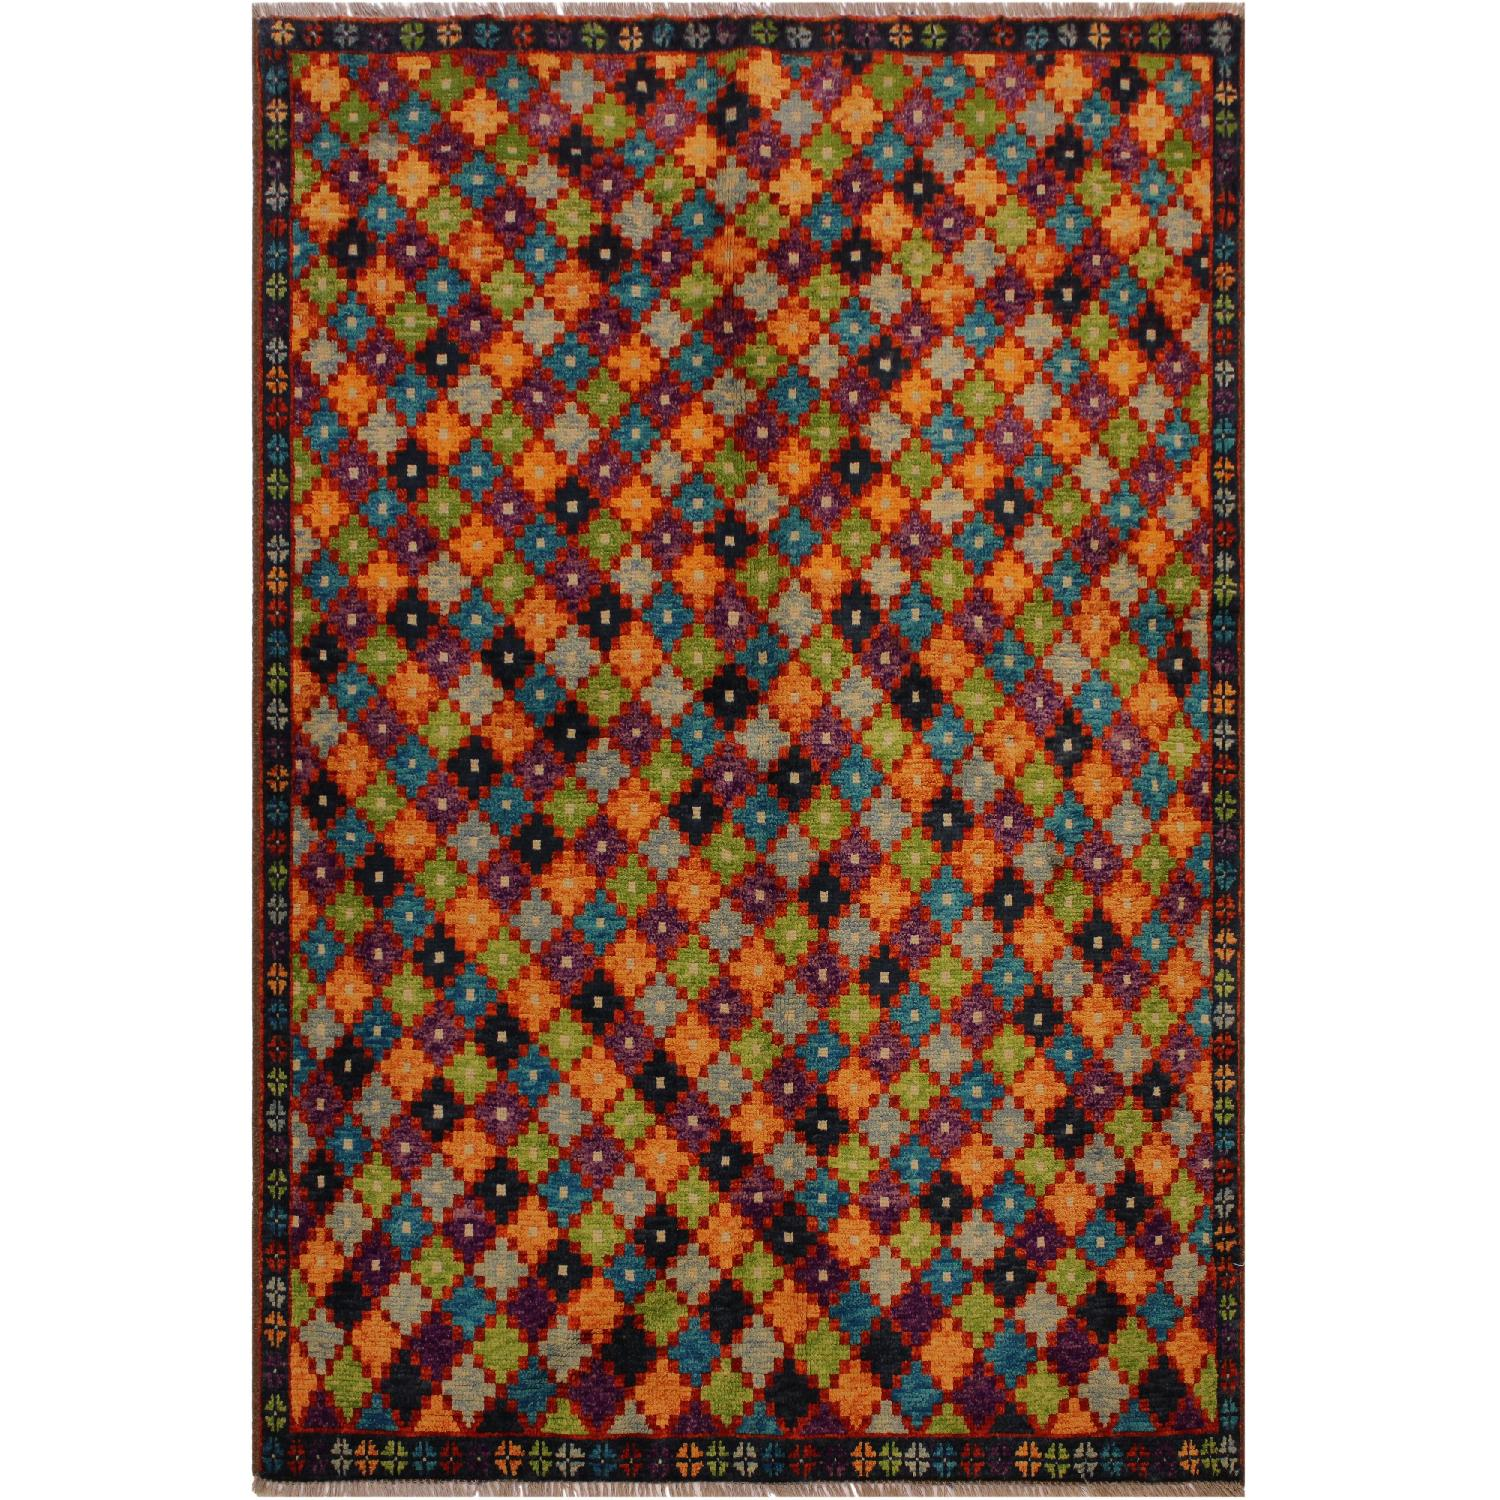 Arshs' Fine Rugs Balouchi Frederic Black/Orange Wool Rug